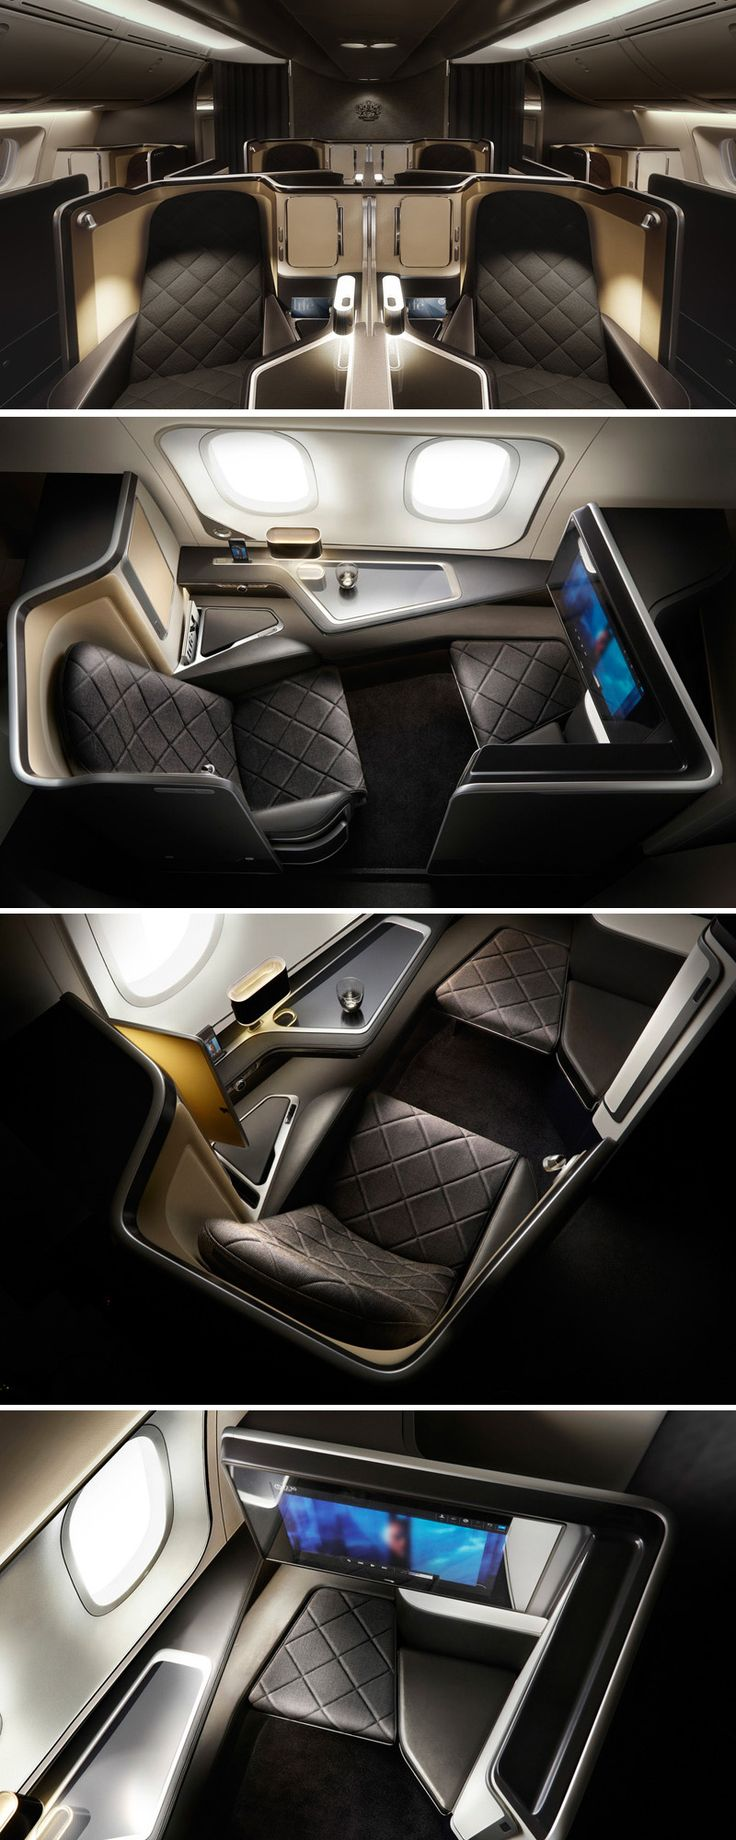 Bucket list dreams! - Take A Look At The First-Class Seats In British Airways' New Dreamliner #HiltonStory